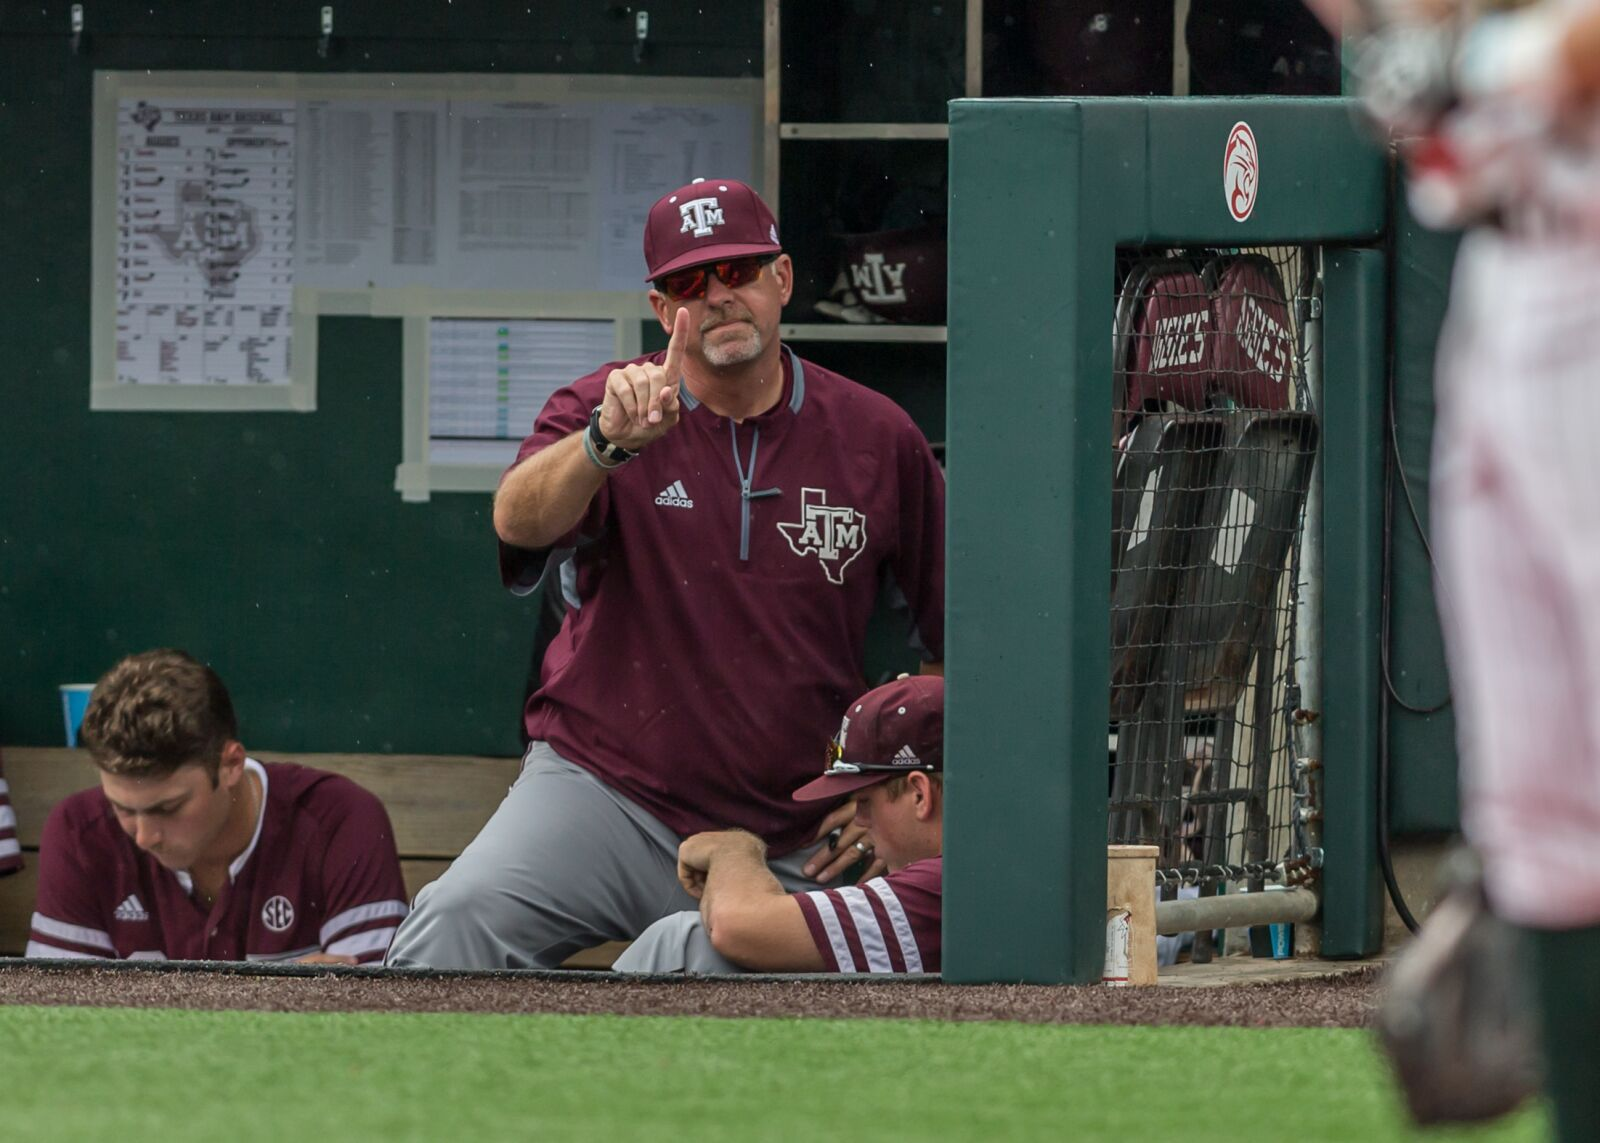 Texas A&M Baseball: Ole Miss preview, game times, TV and more